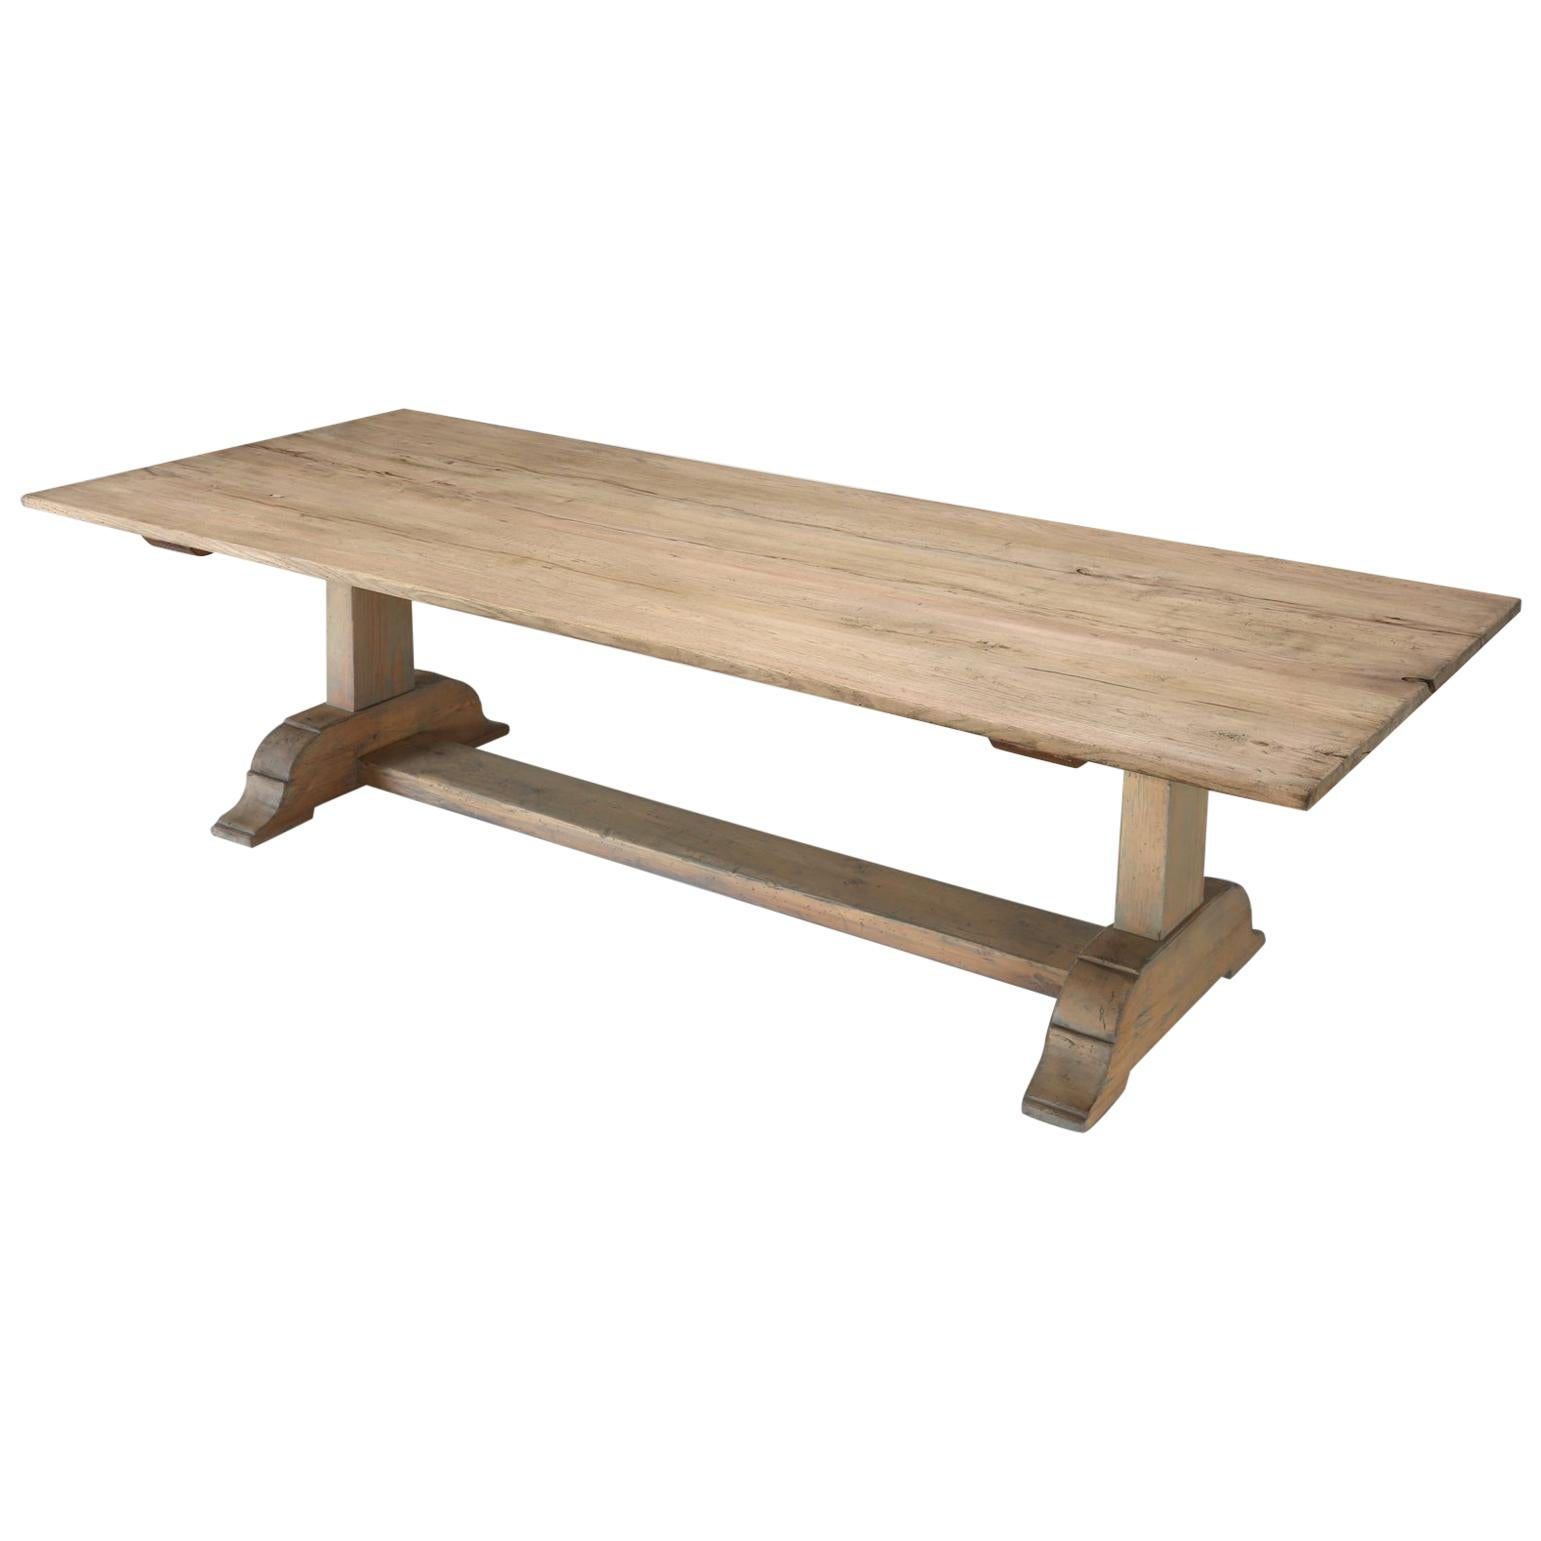 Italian Style Ash Wood Trestle Dining Table For Sale